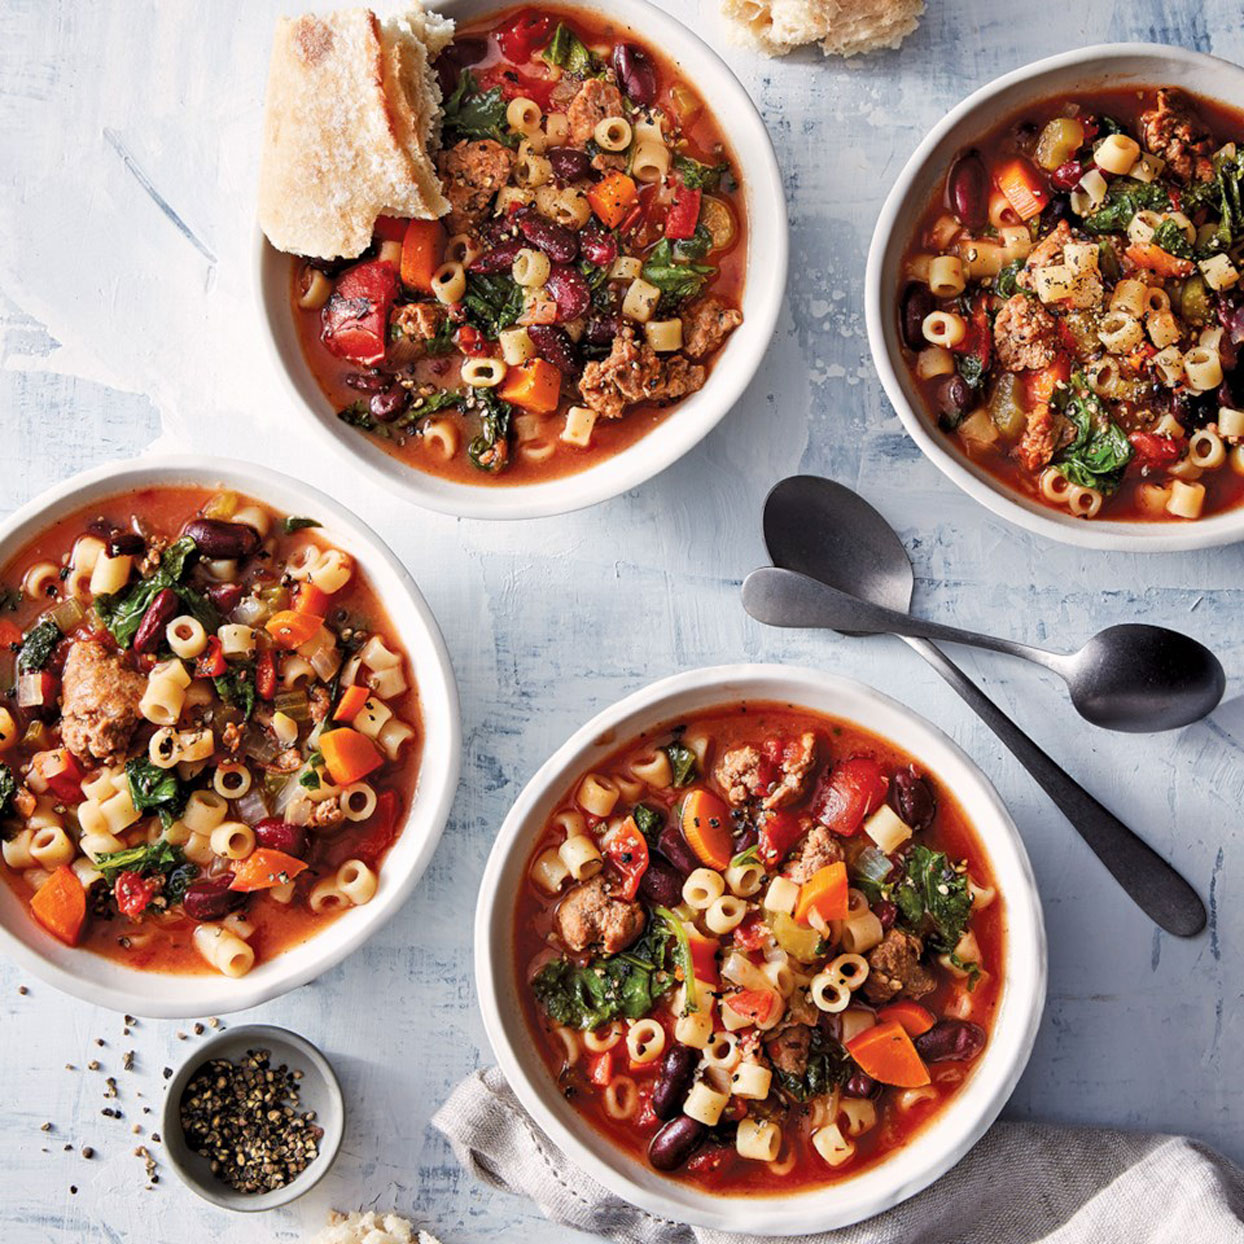 10 Slow-Cooker Soups for Weight Loss You'll Want to Make on Repeat